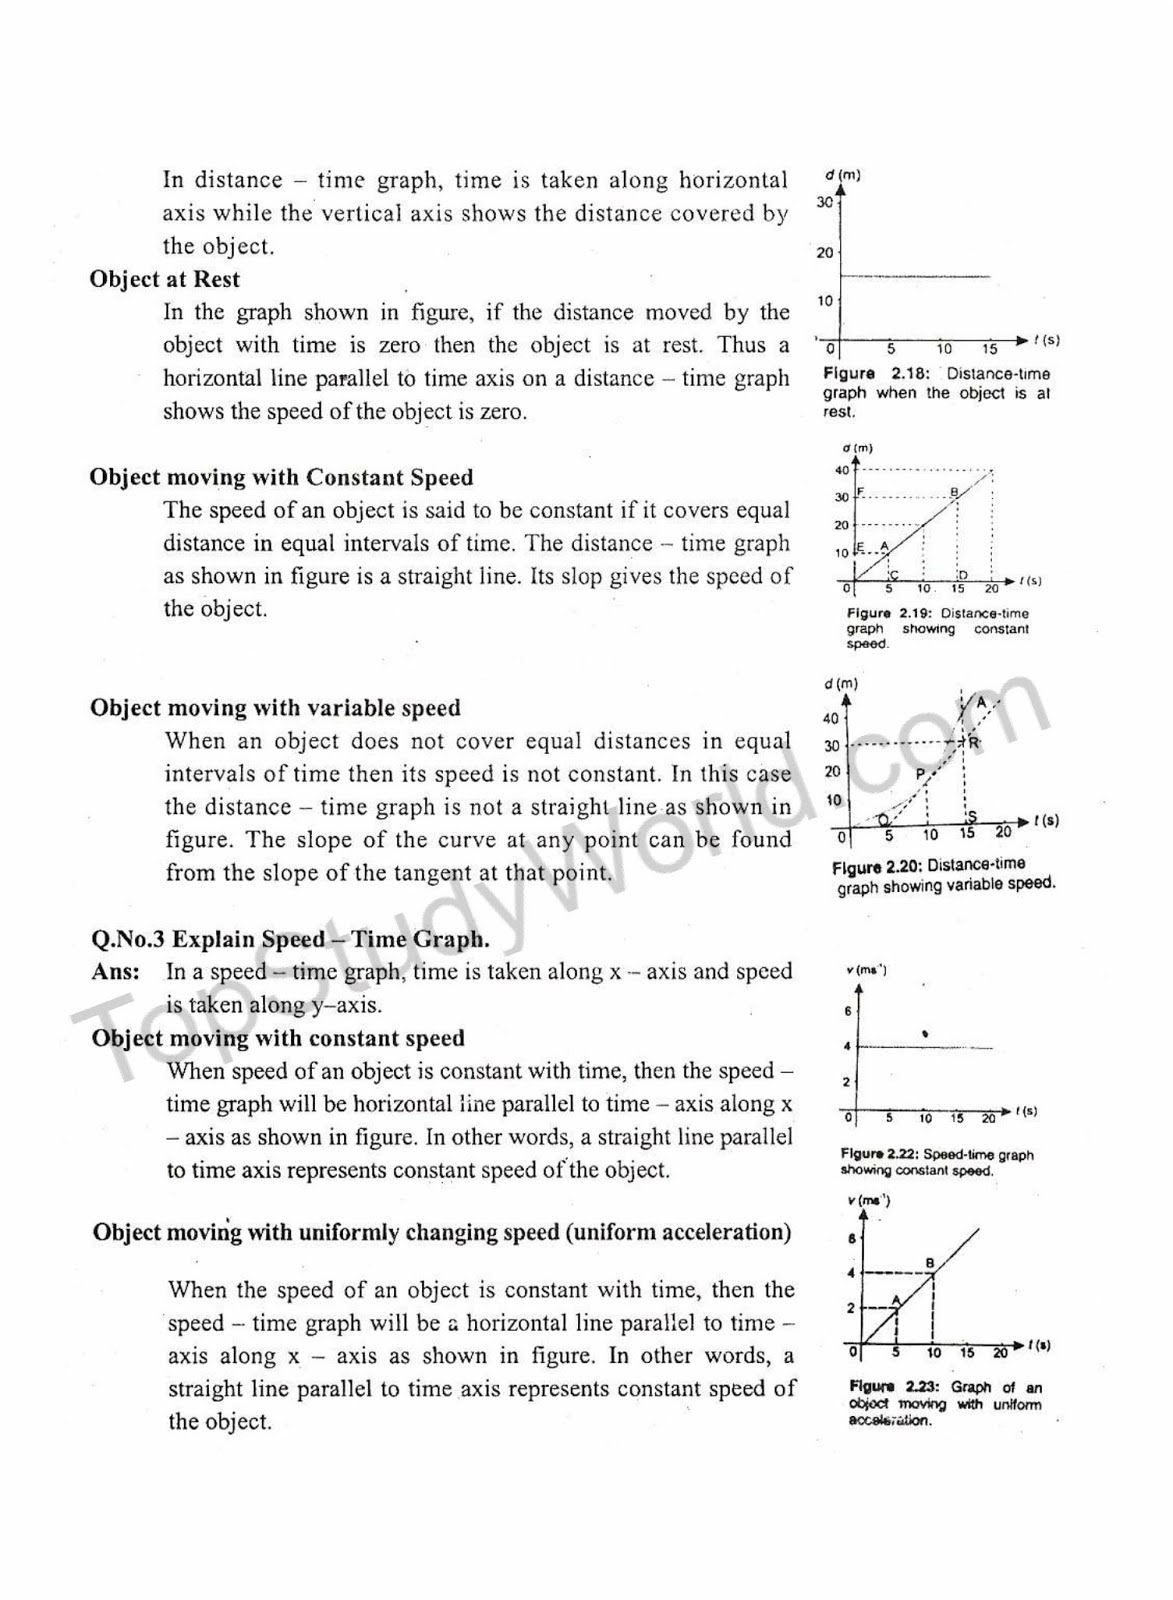 worksheet Calculating Speed Time Distance And Acceleration Worksheet Answers kips 9th class kinematics physics complete notes with pdf top the long questions answers in below images